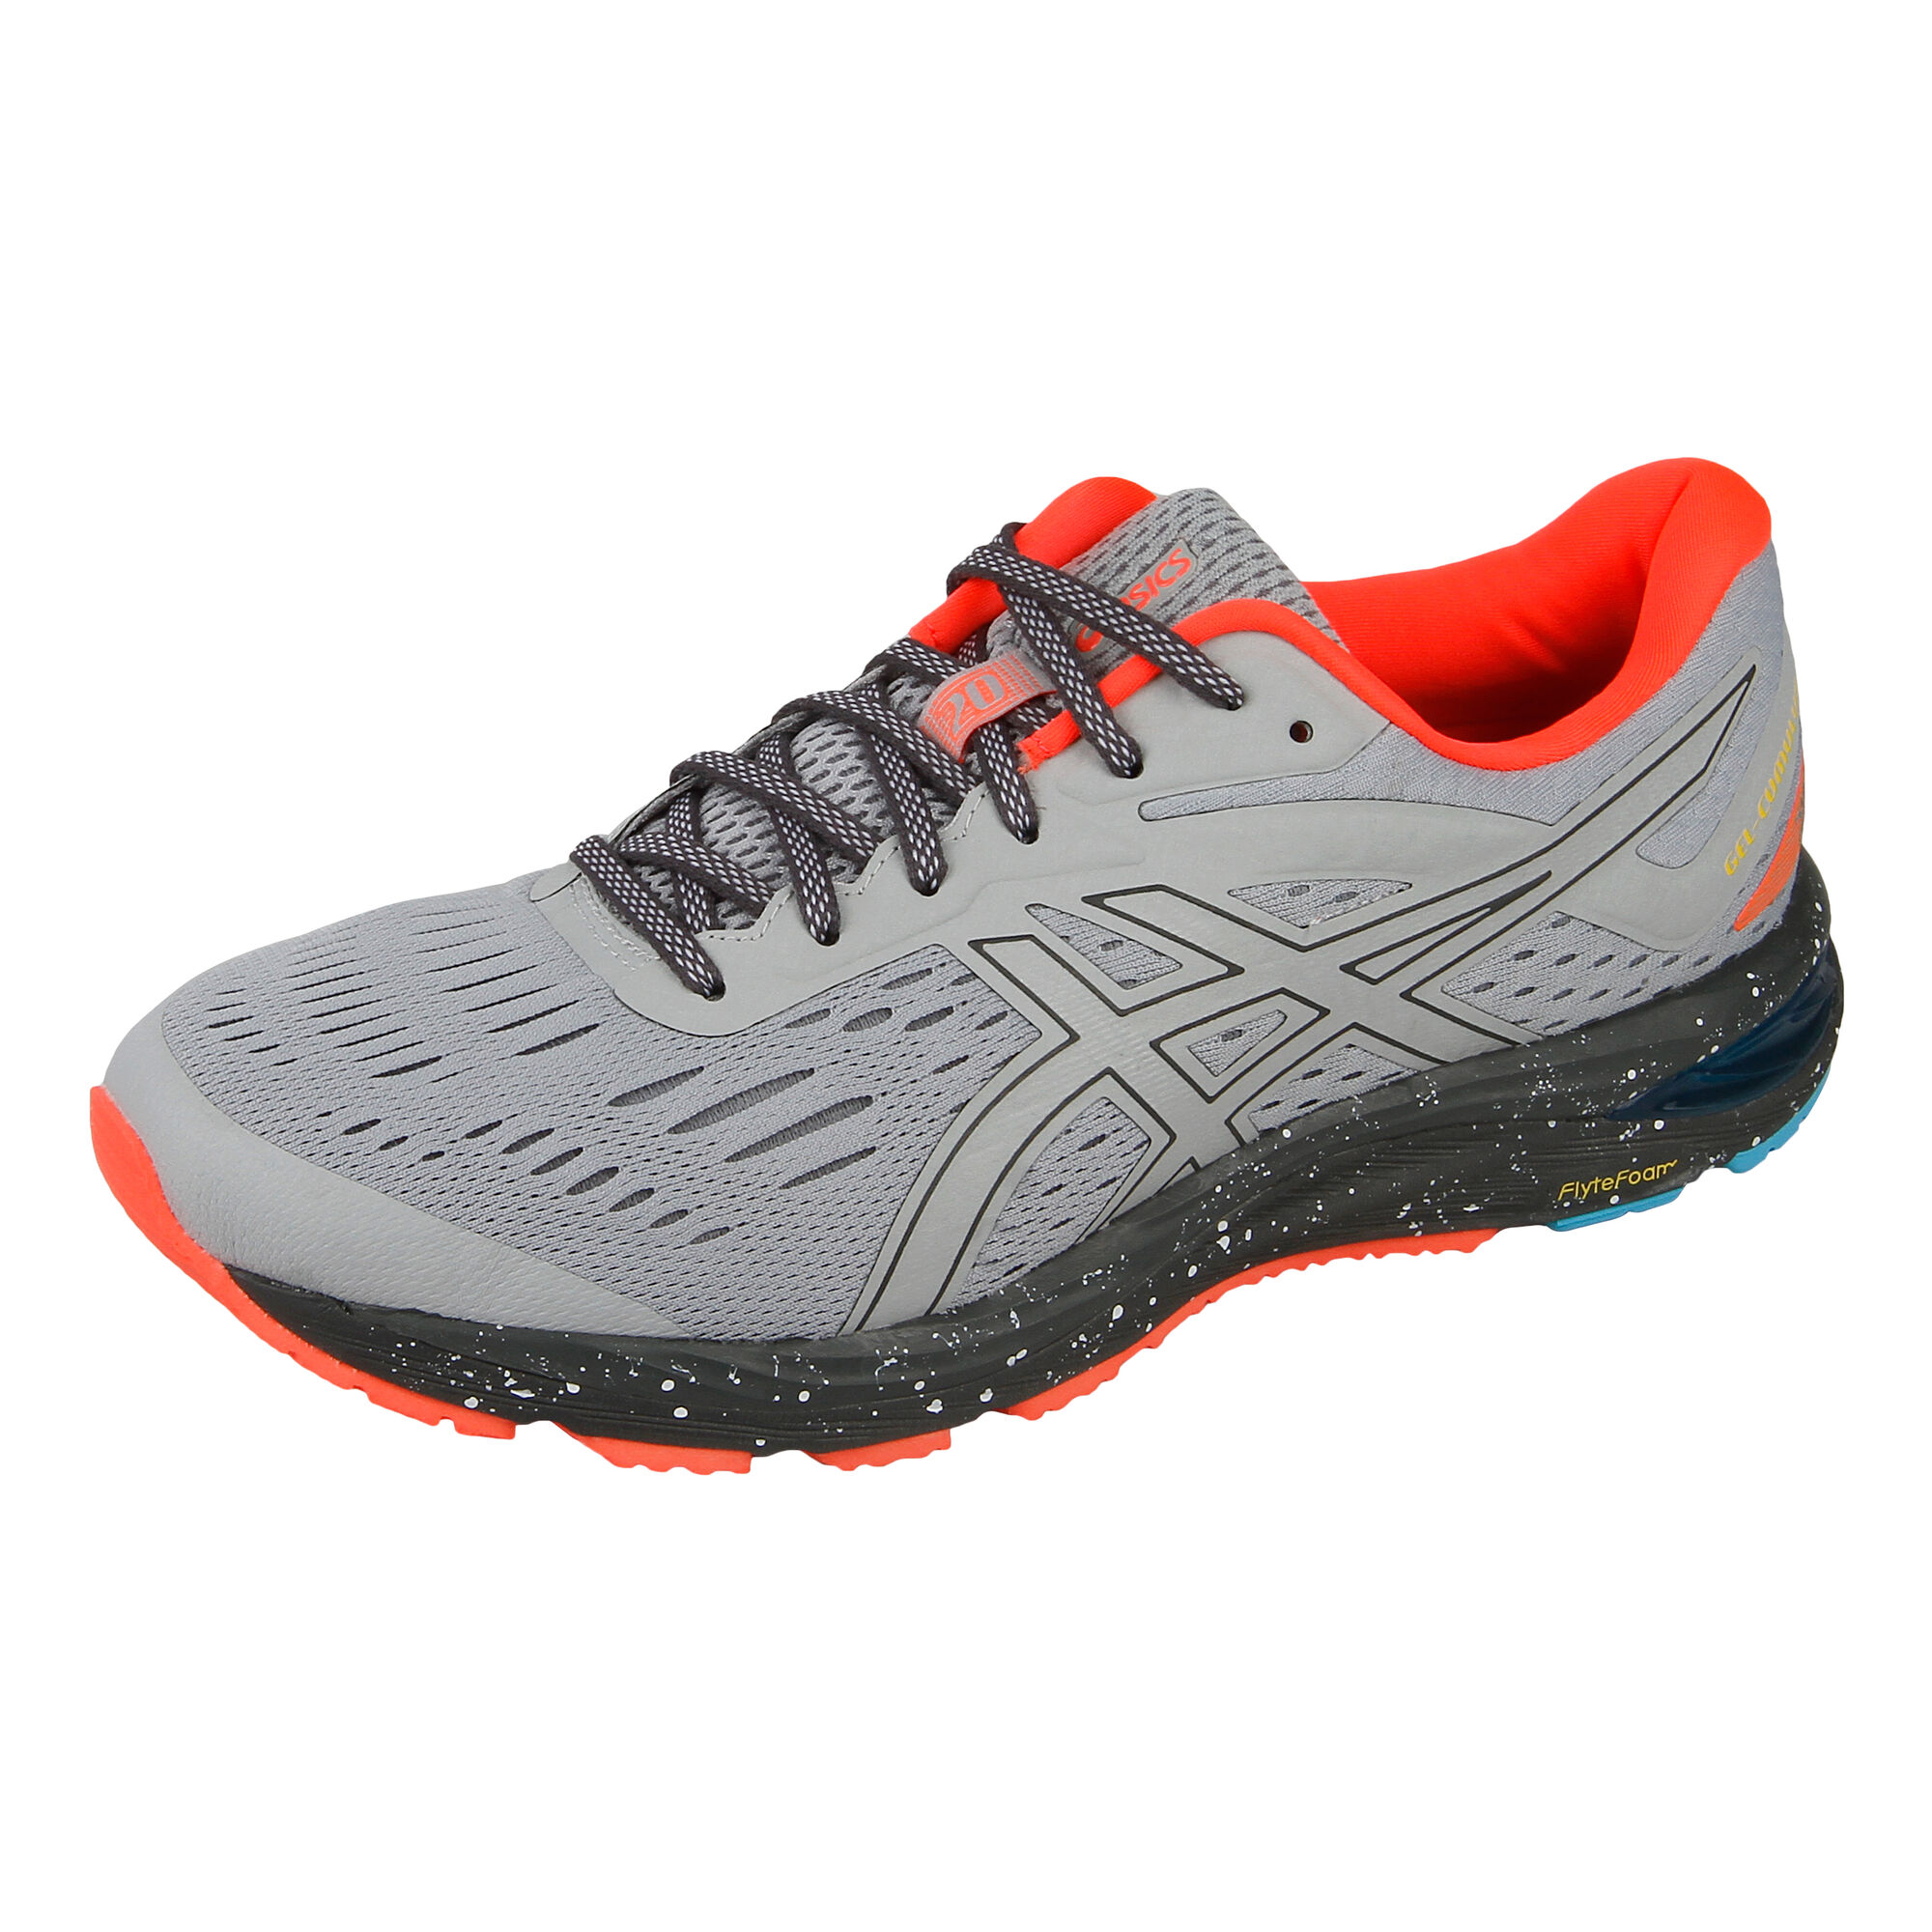 53a348ca08 buy Asics Gel-Cumulus 20 LE Neutral Running Shoe Men - Lightgrey ...